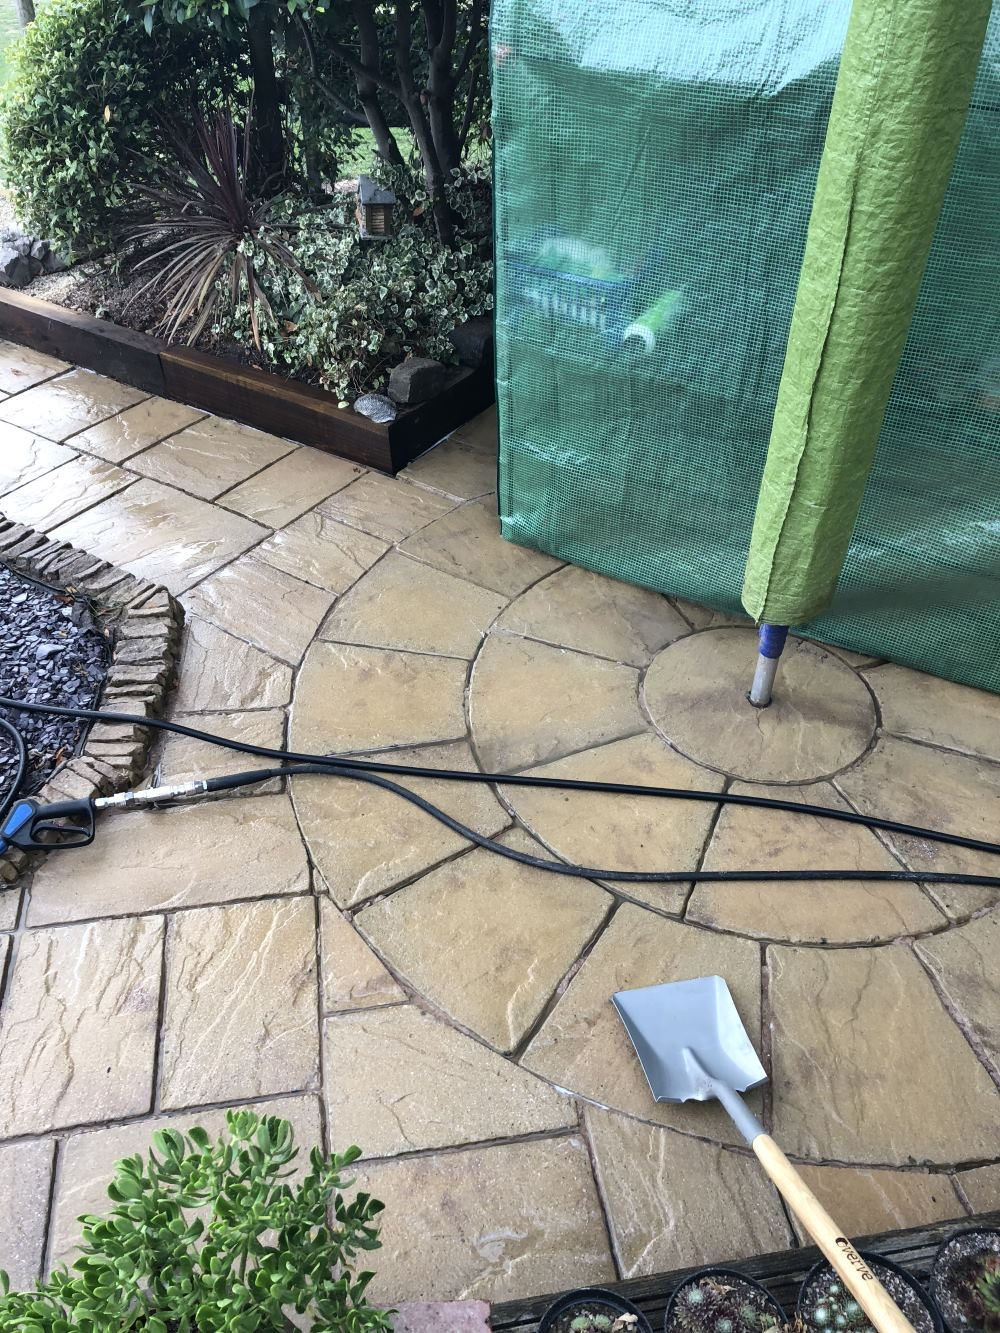 Bristol Driveway Cleaning   Decking Window and Patio Cleaning with Bristol Blast Away